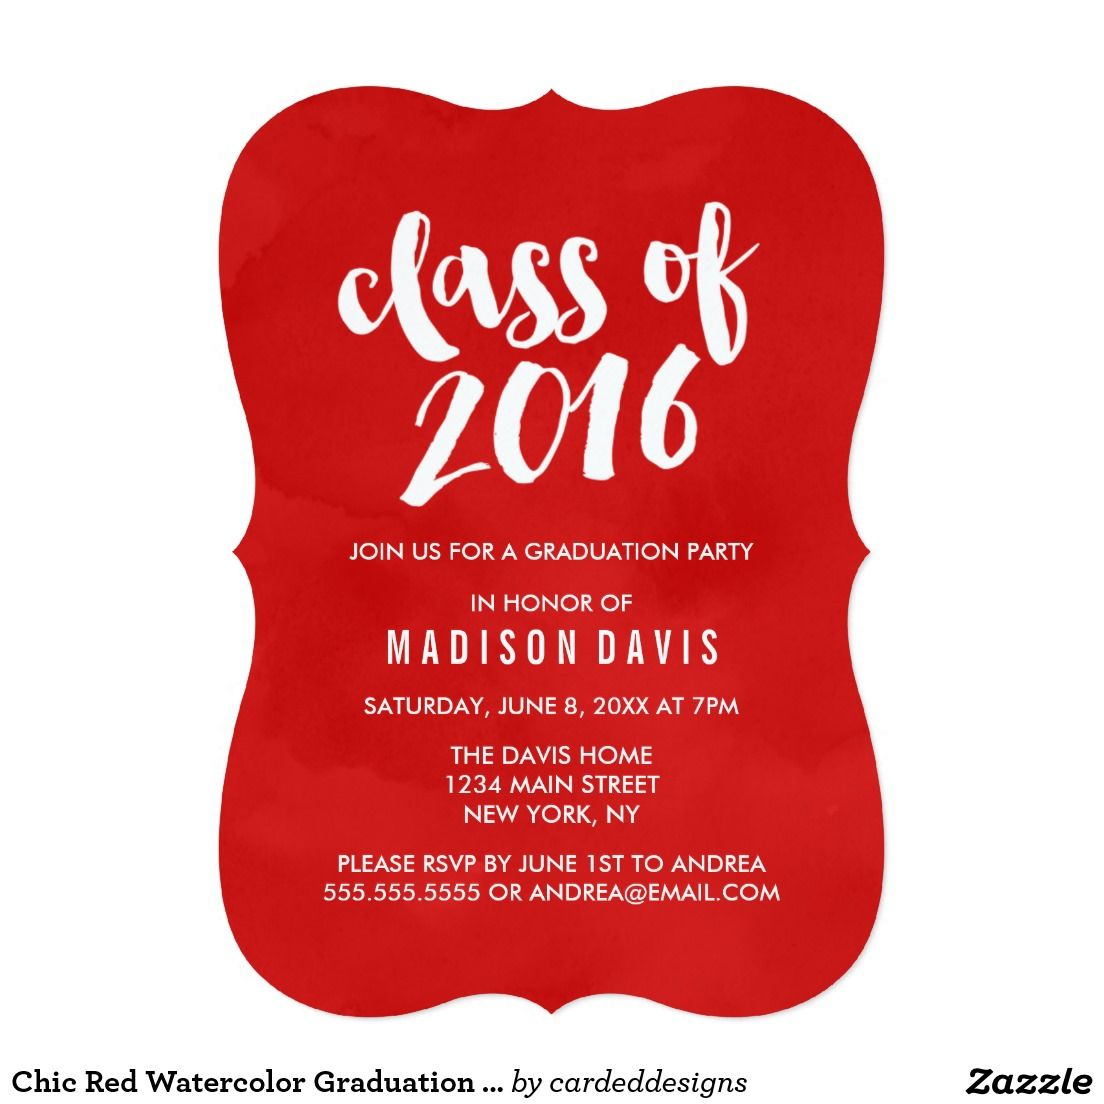 Chic Red Watercolor Graduation Party Invitation | Graduation | Pinterest